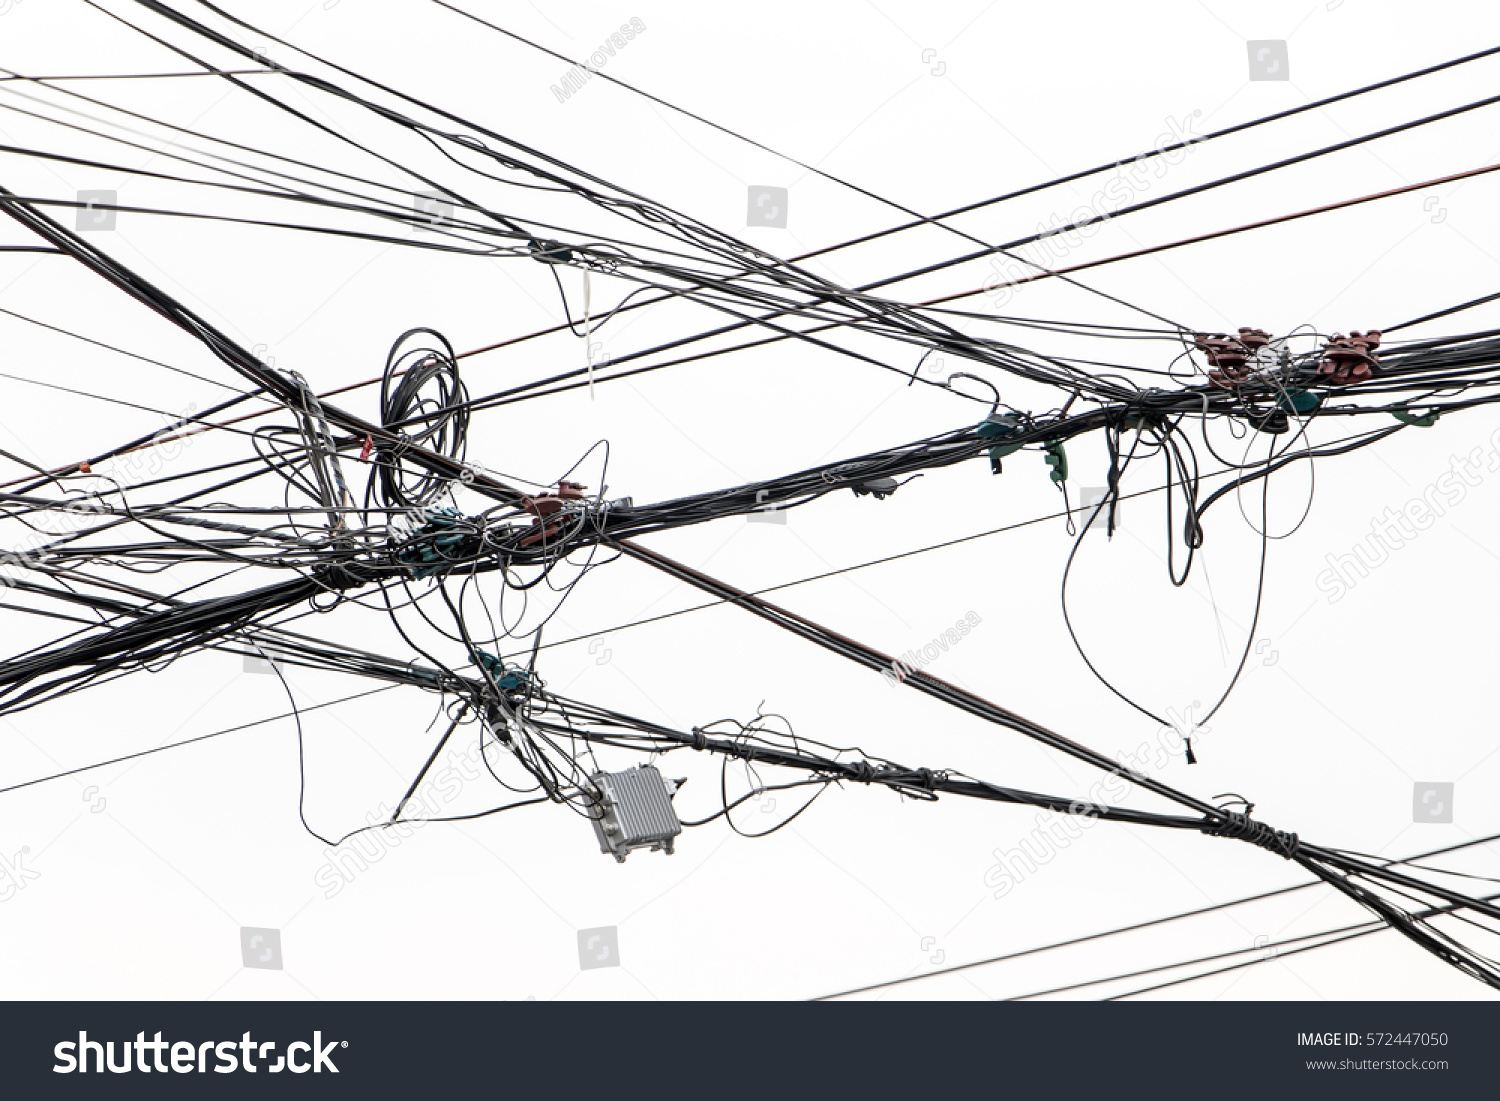 Electrical Wires On White Background Electric Stock Photo (Royalty ...